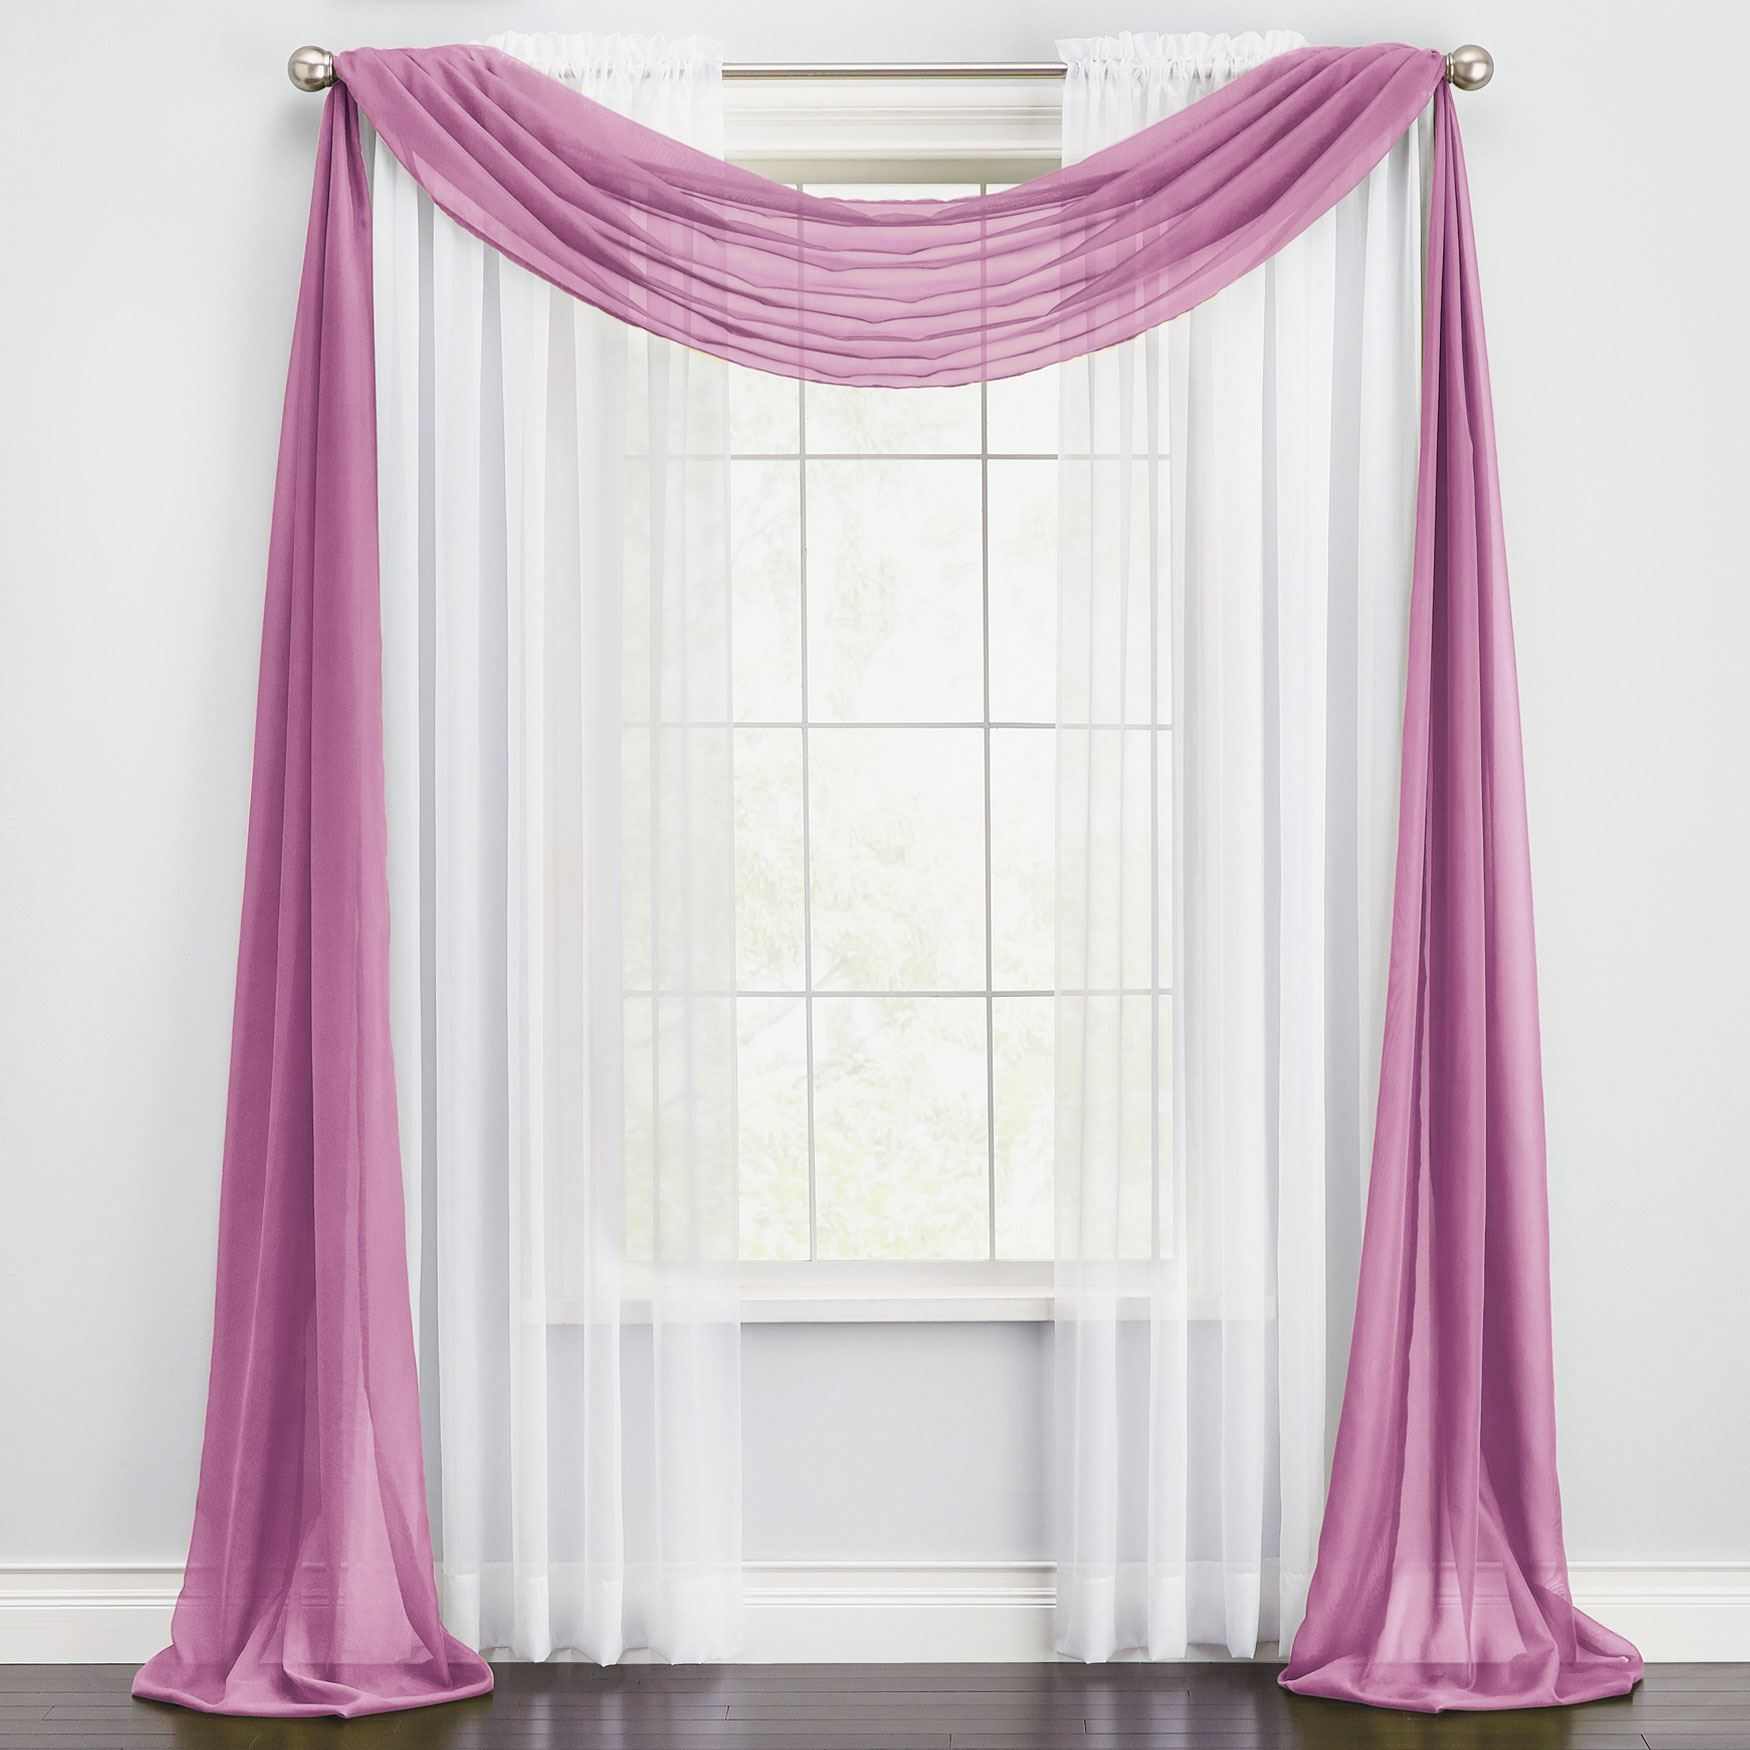 BH Studio® Sheer Voile Scarf Valance,